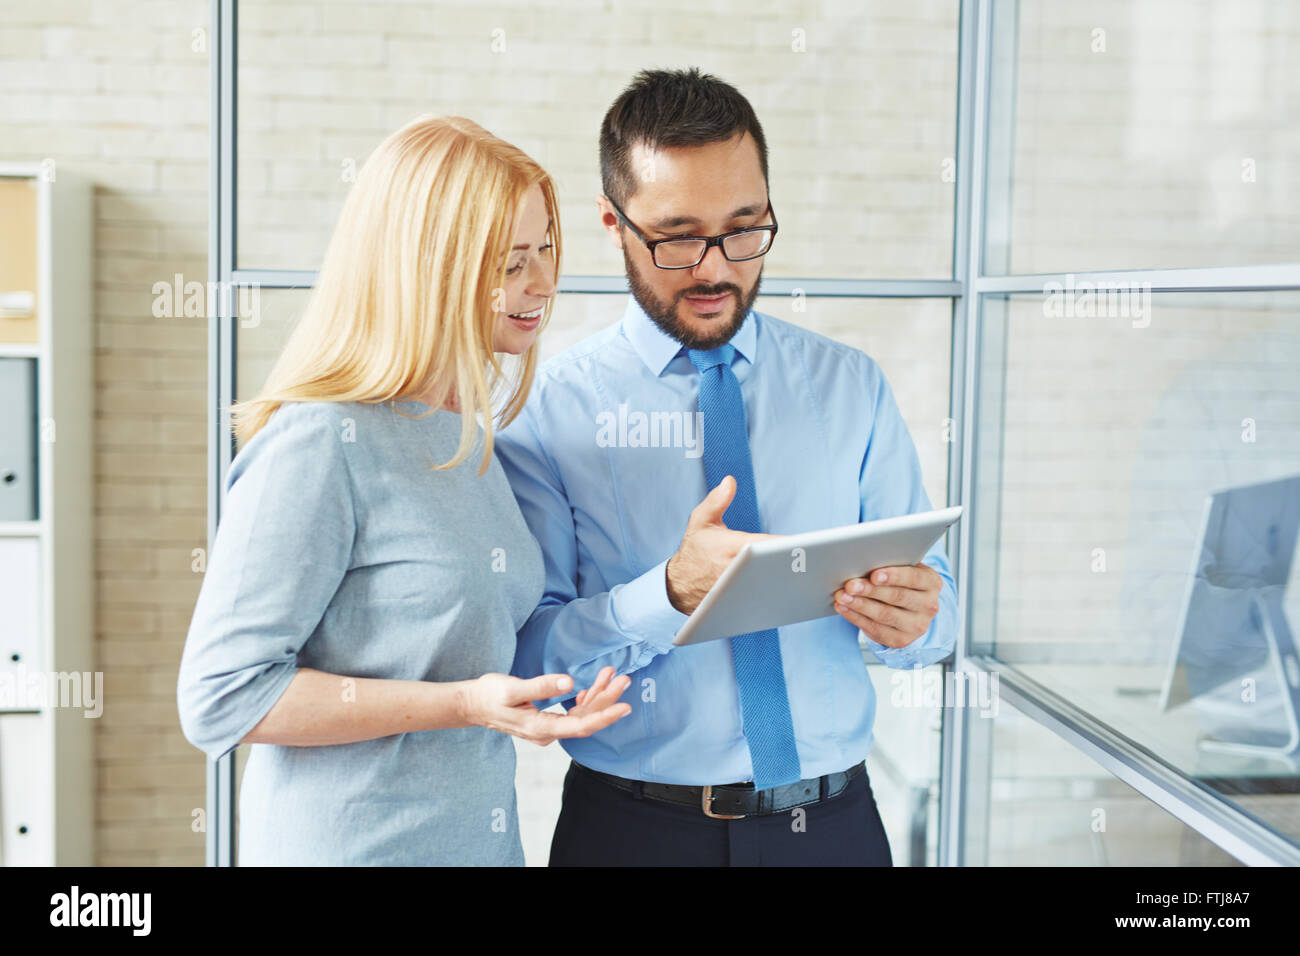 Planning work - Stock Image